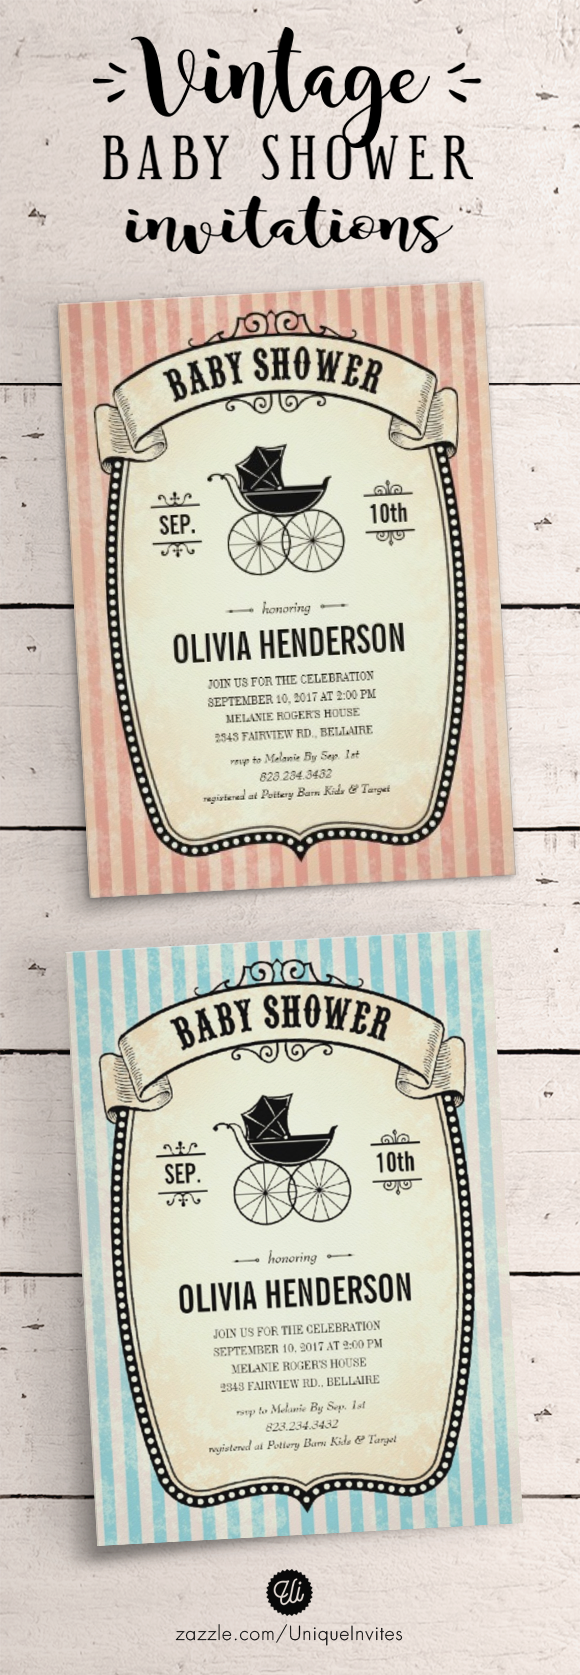 Victorian Vintage Baby Shower Invitations | Baby Shower Invitations ...